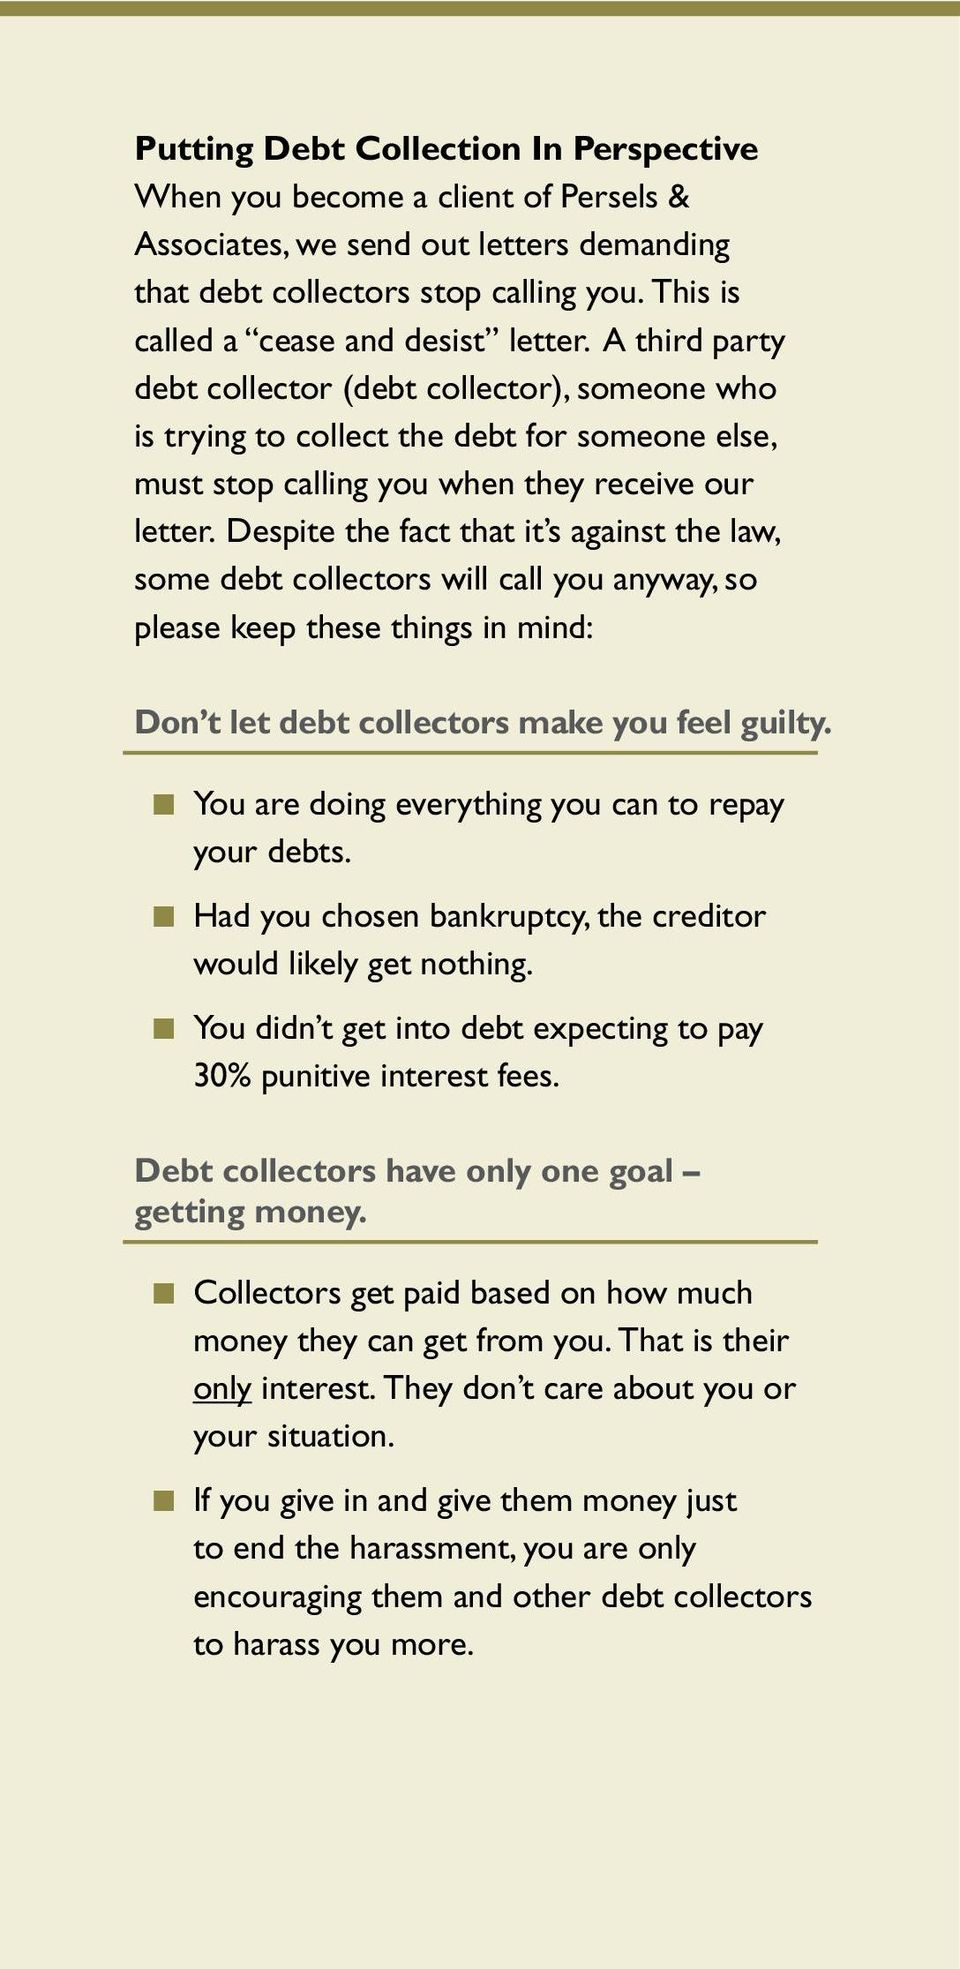 Despite the fact that it s agaist the law, some debt collectors will call you ayway, so please keep these thigs i mid: Do t let debt collectors make you feel guilty.